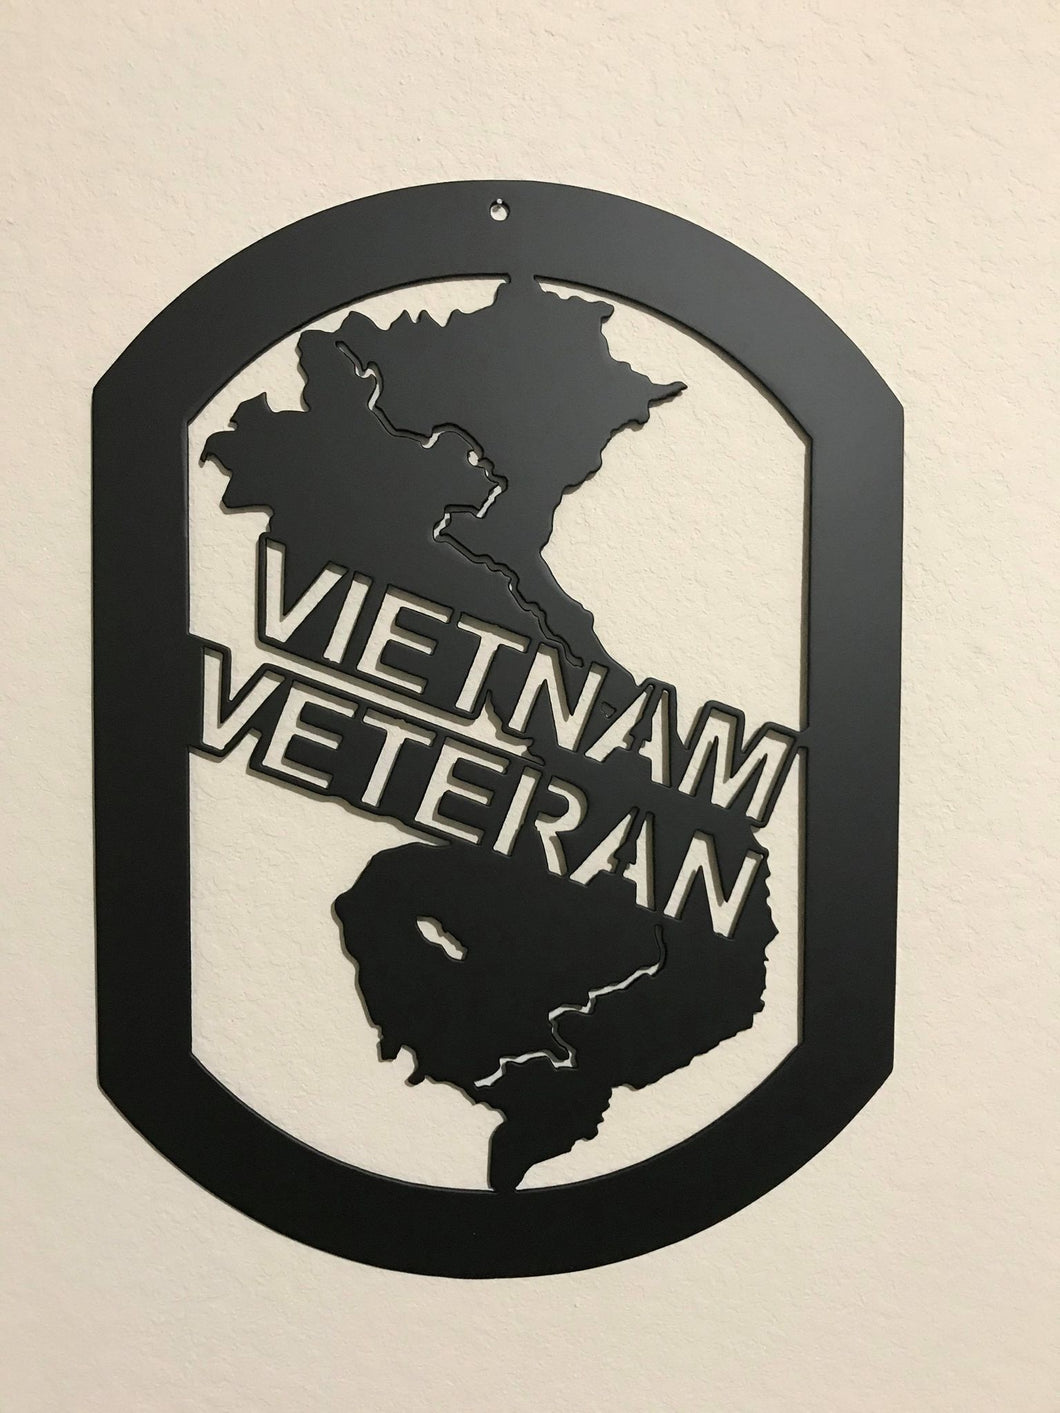 Vietnam Veteran Combat Shield™ Wall Display